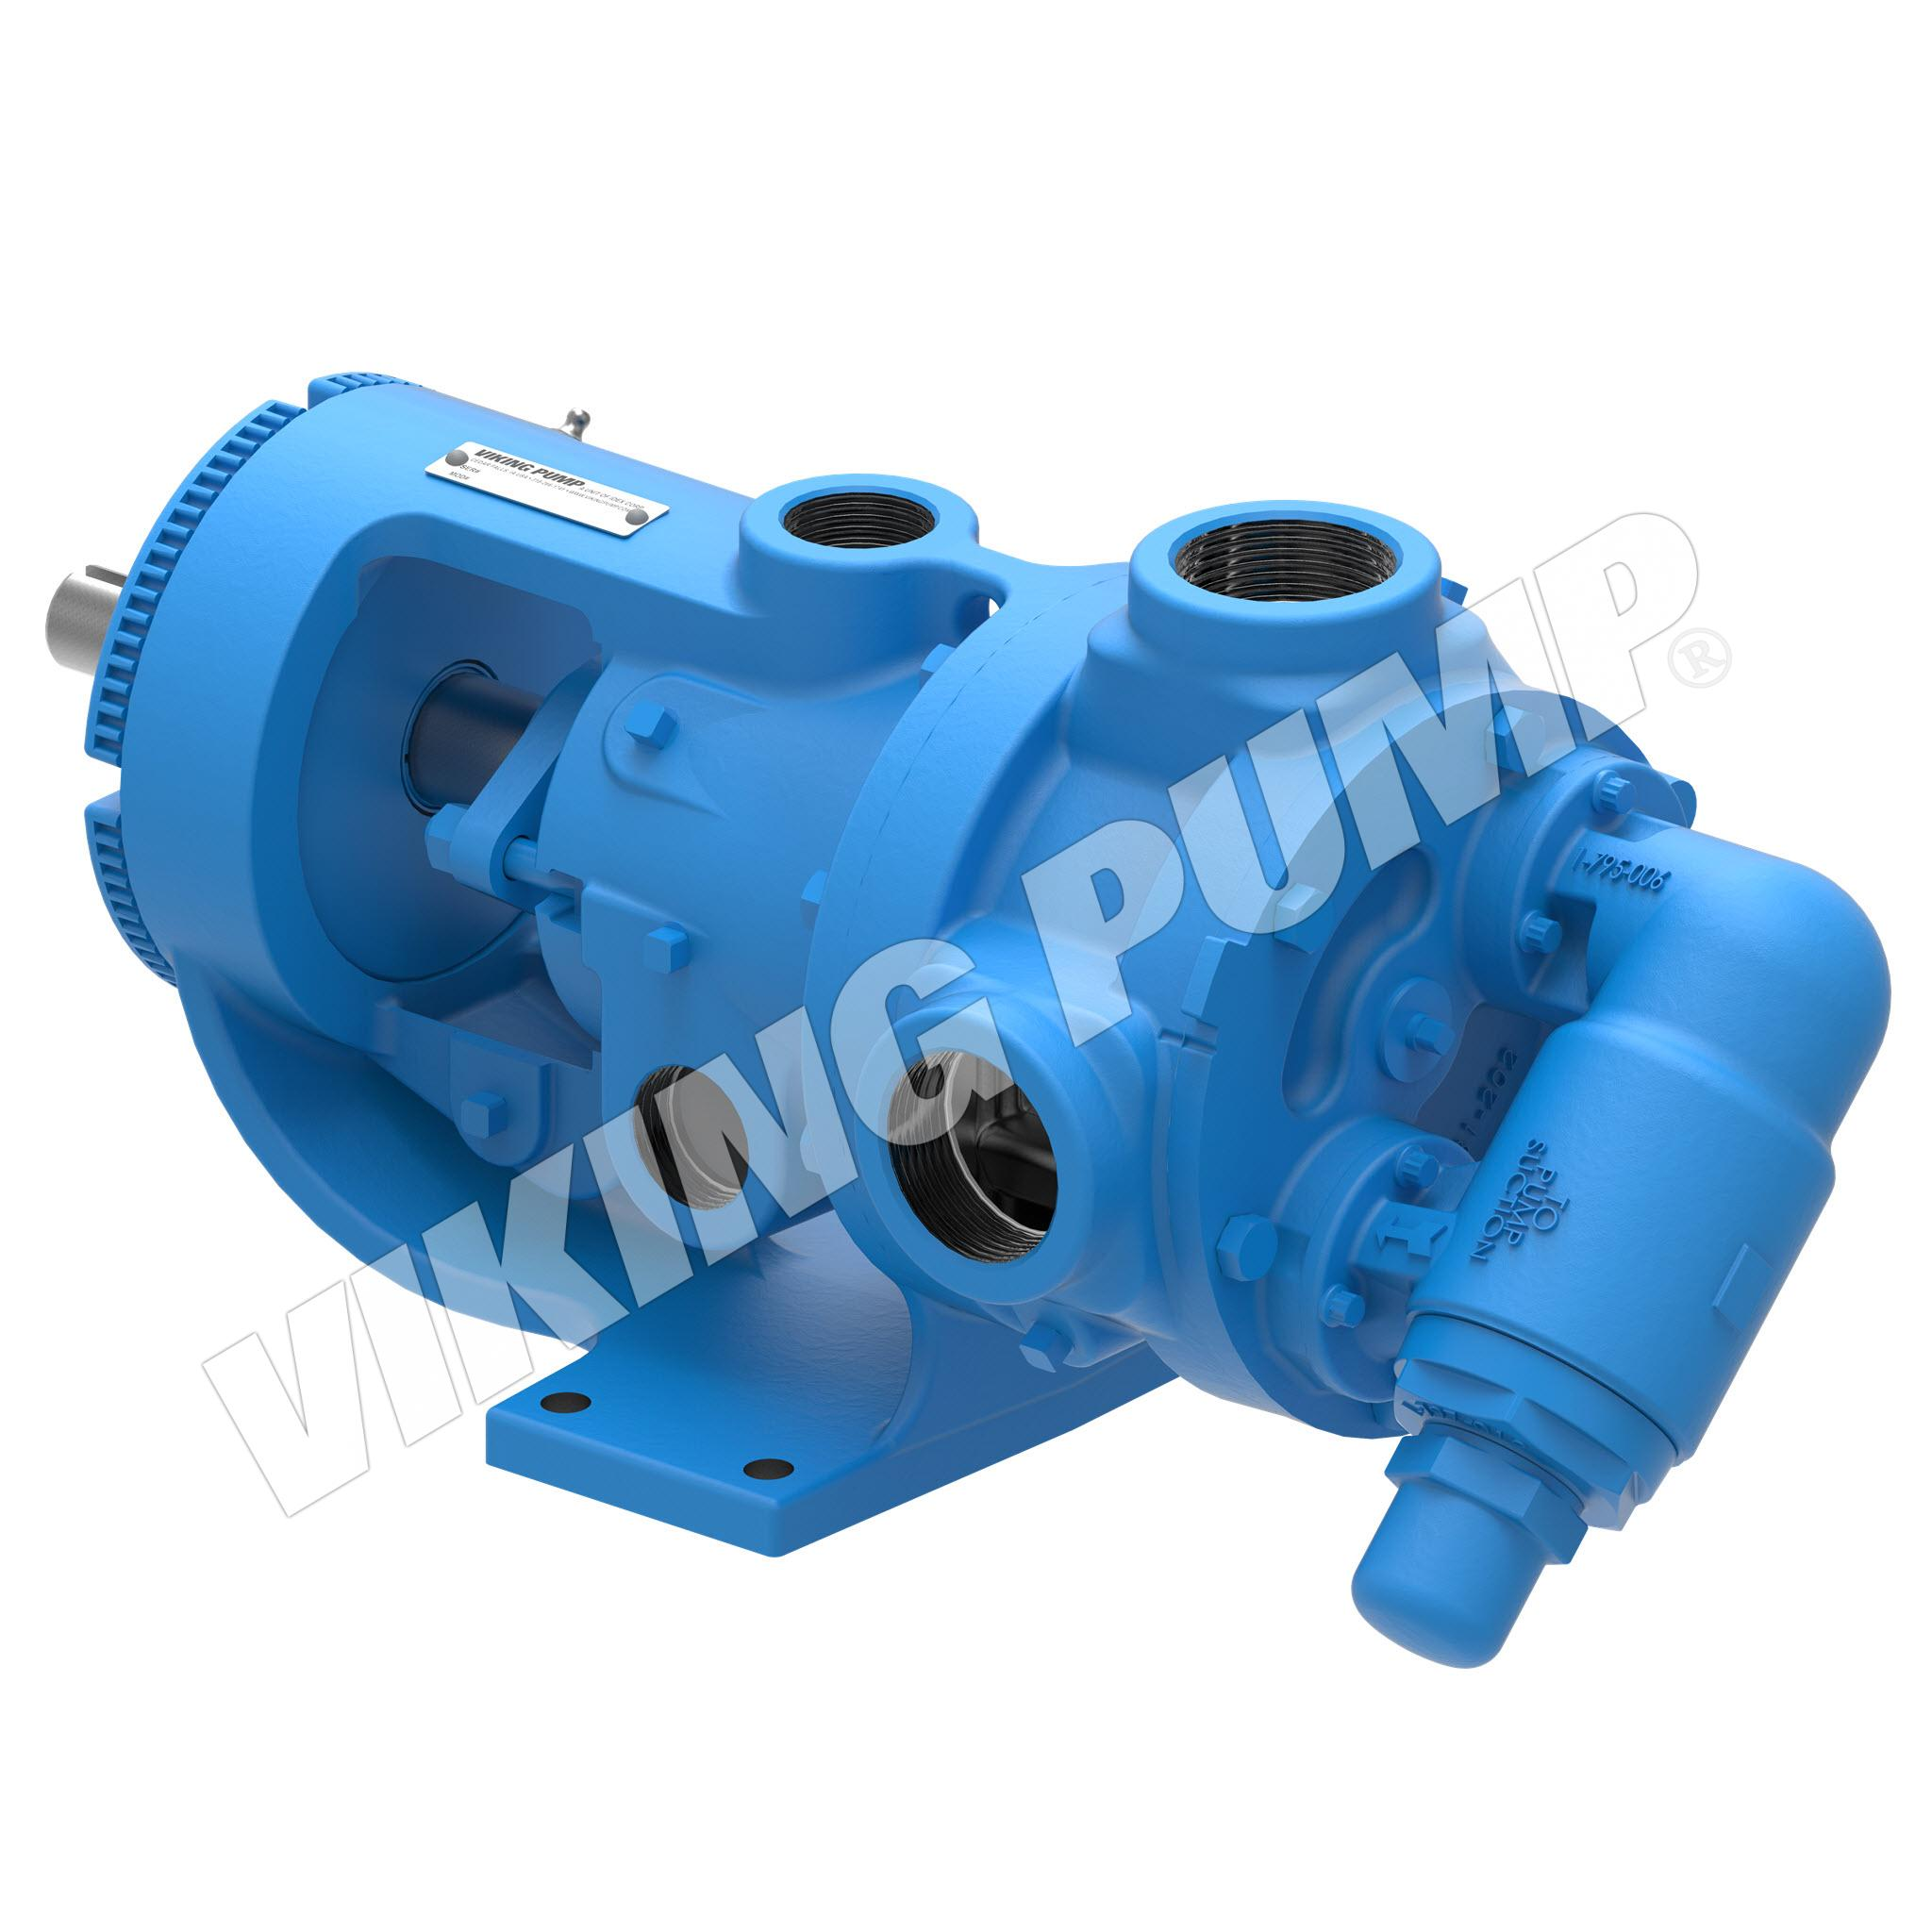 Model K4226A, Foot Mounted, Mechanical Seal Pump w/Optional Relief Valve